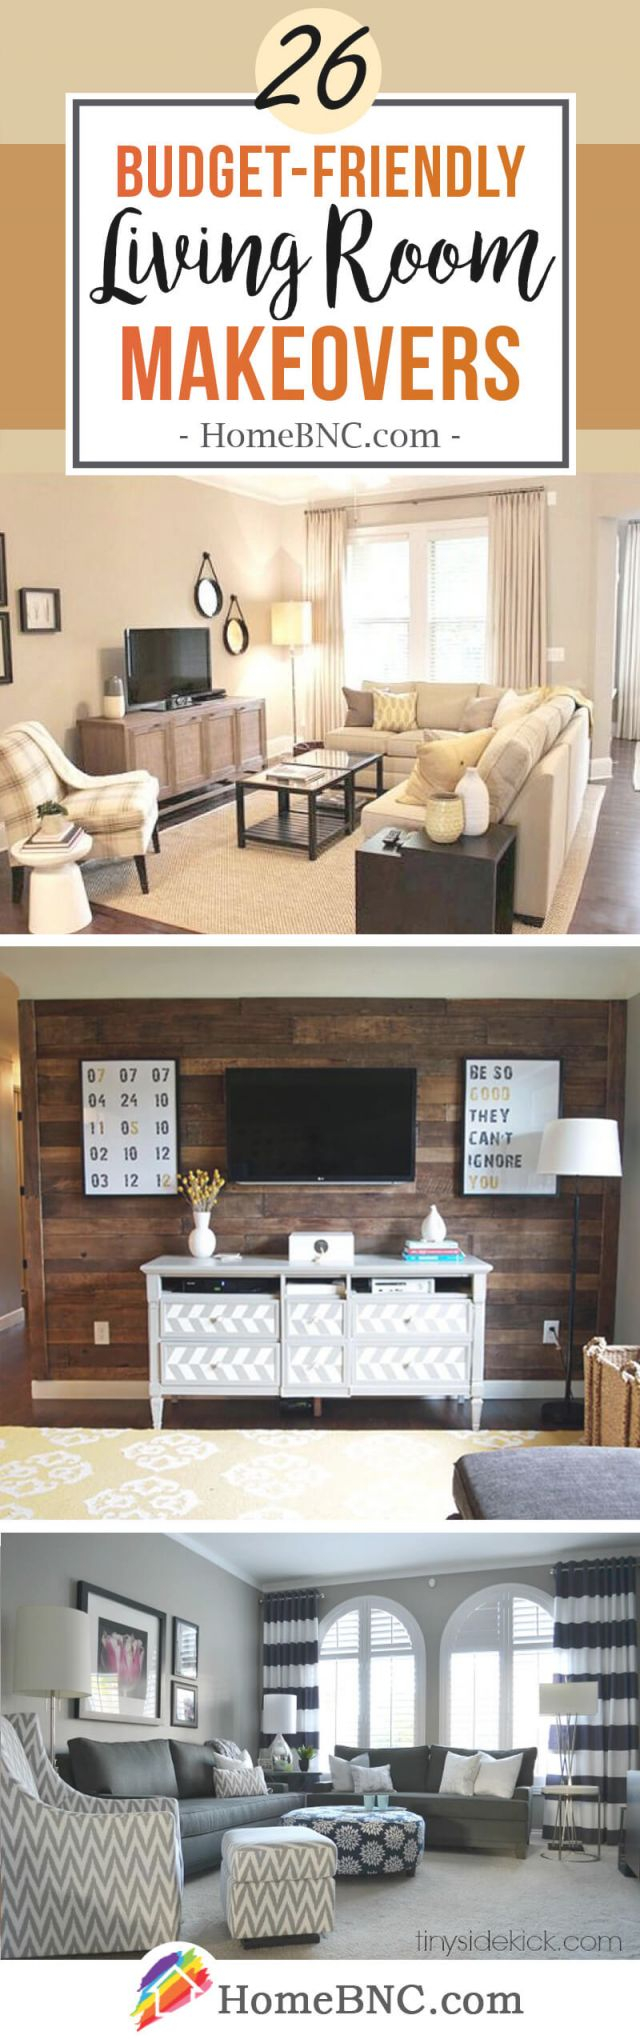 26 Best Budget Friendly Living Room Makeover Ideas For 2020 with Decorating A Small Living Room On A Budget